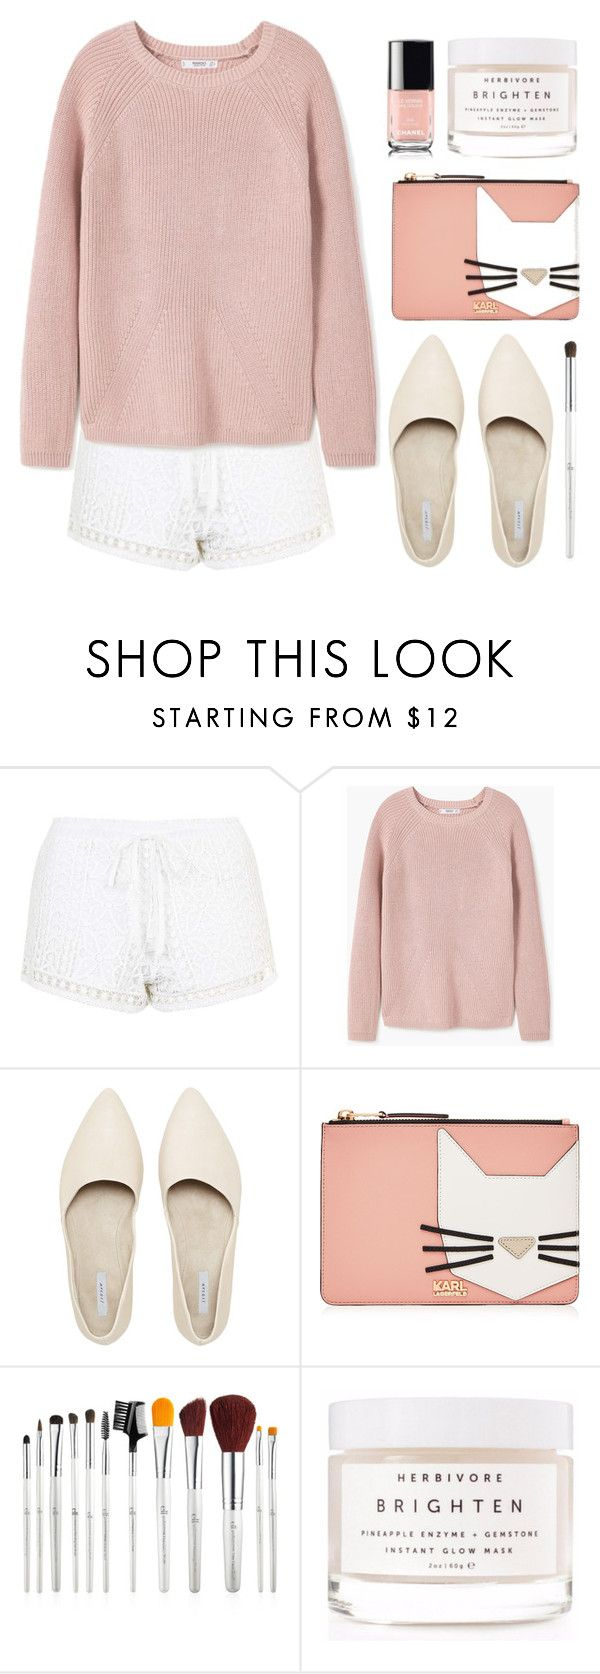 """""""Simple outfit"""" by stevie-pumpkin ❤ liked on Polyvore featuring Topshop, MANGO, Karl Lagerfeld and Herbivore"""